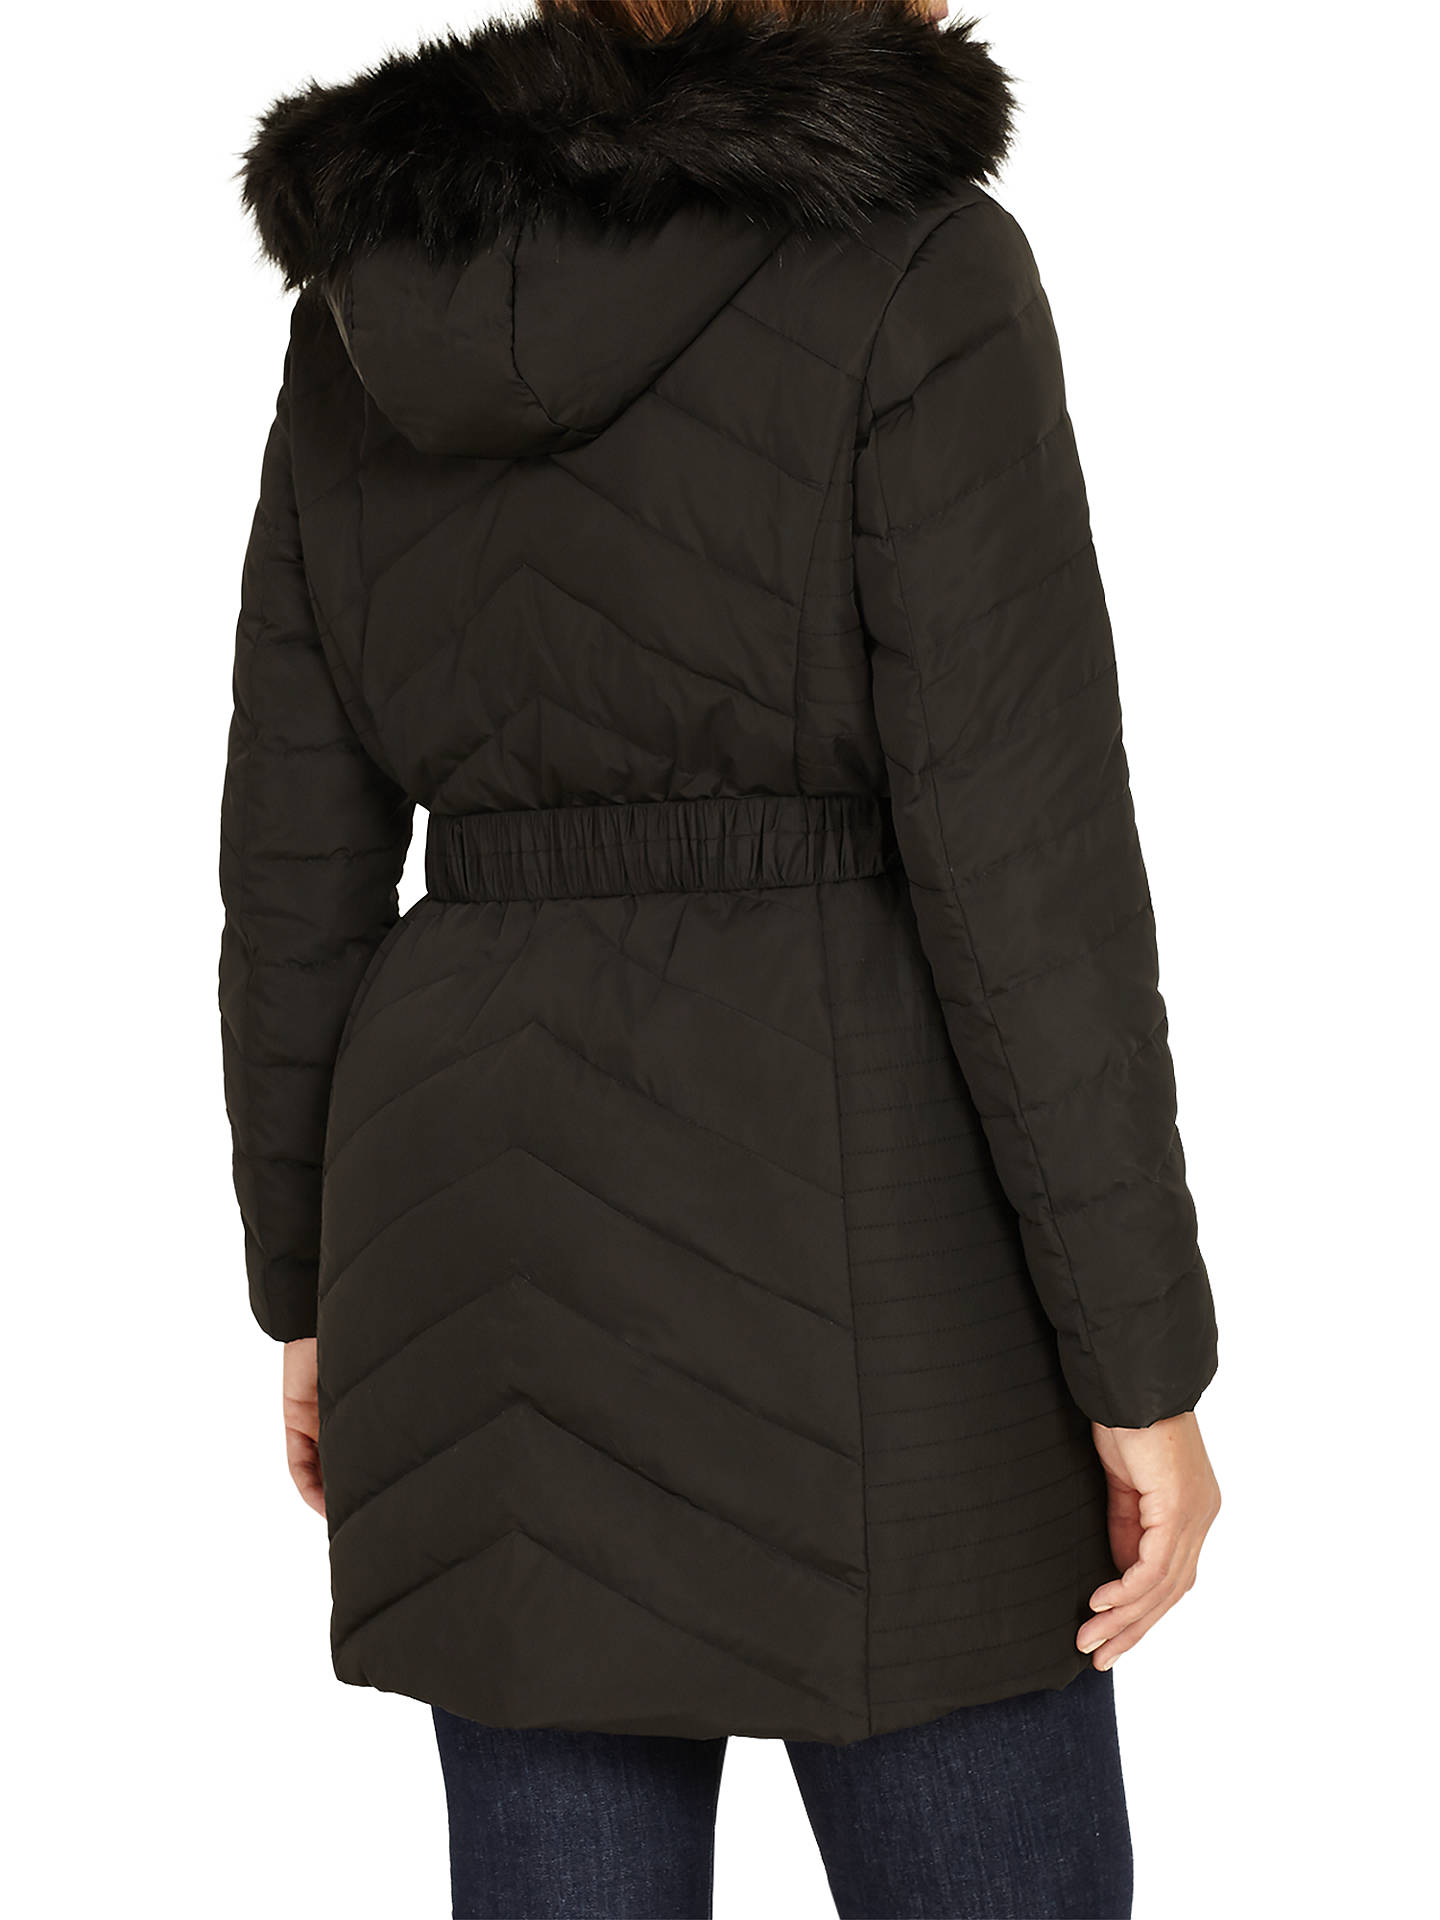 BuyStudio 8 Jamie Long Sleeve Puffer Coat, Black, 16 Online at johnlewis.com